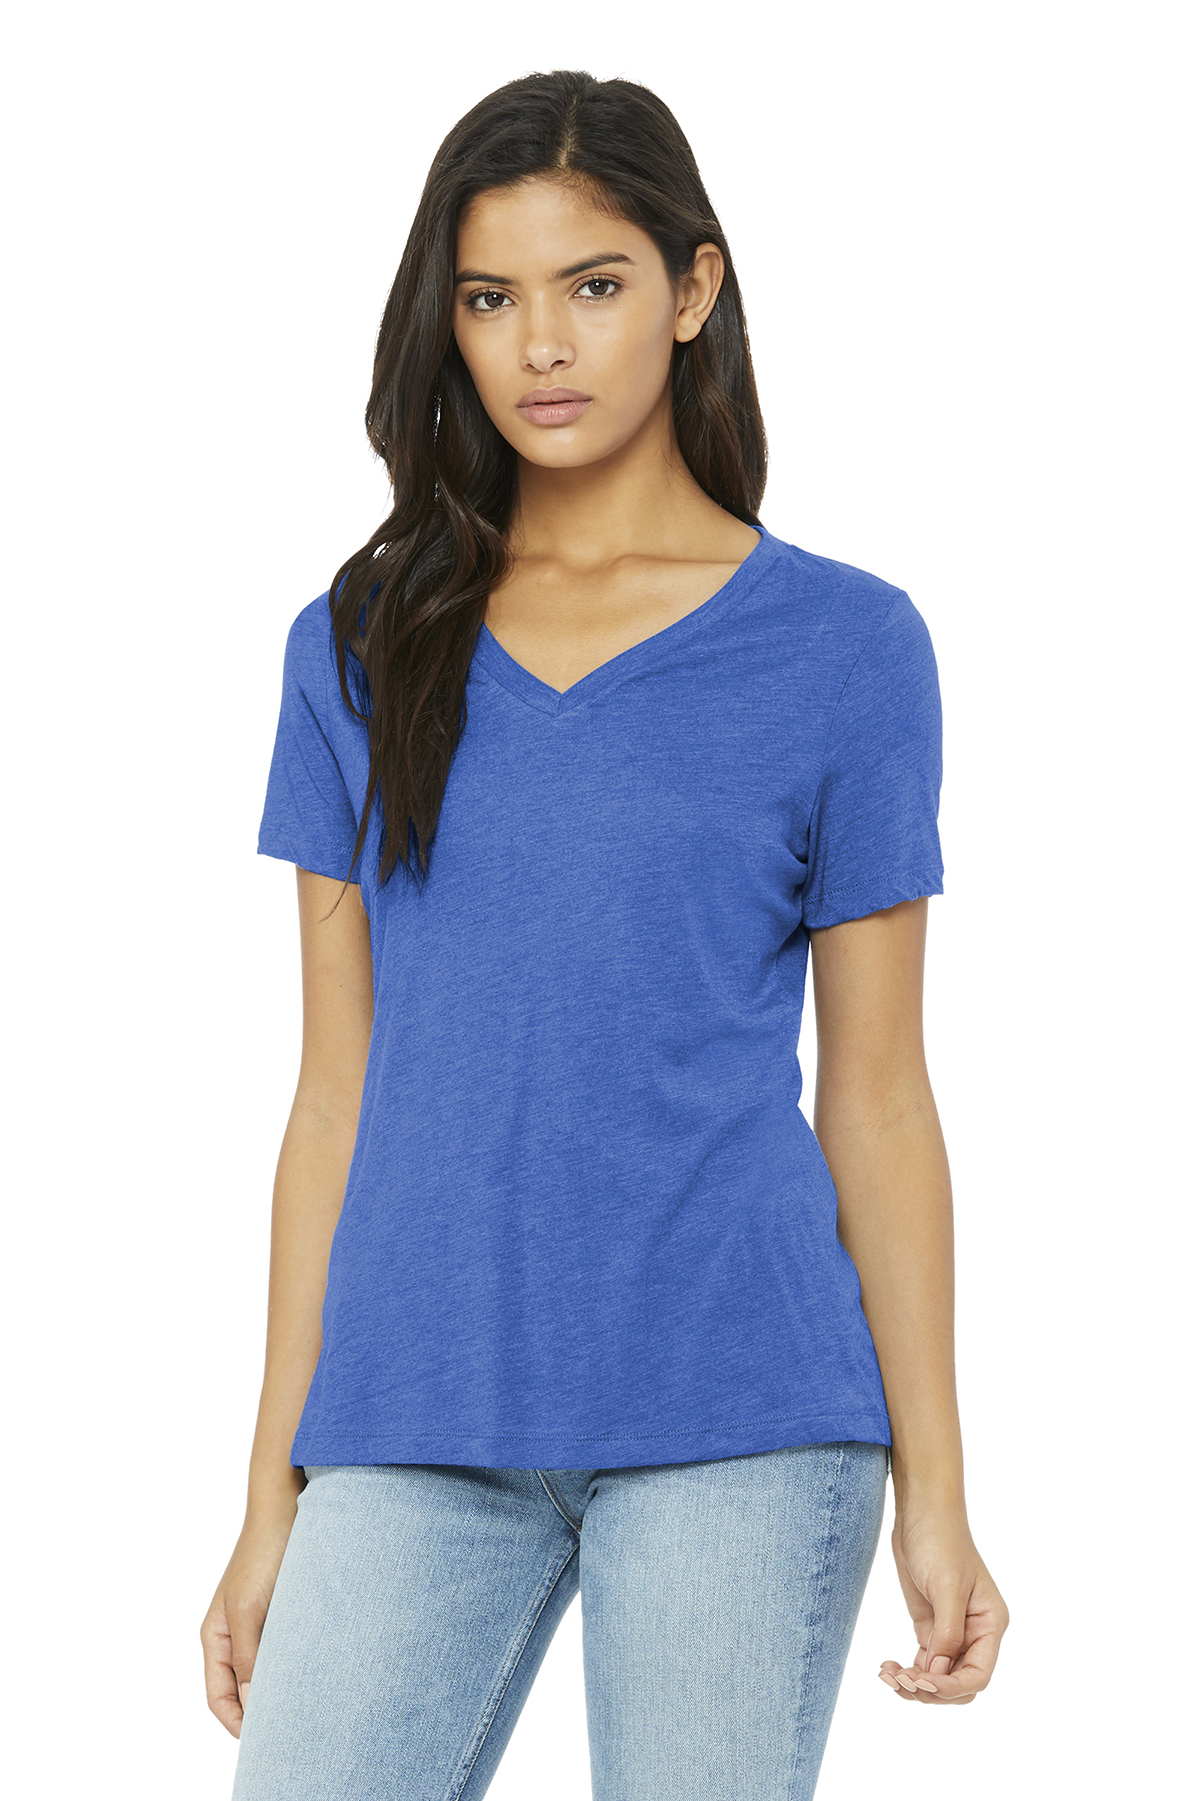 910392c8c BELLA+CANVAS ® Women's Relaxed Jersey Short Sleeve V-Neck Tee